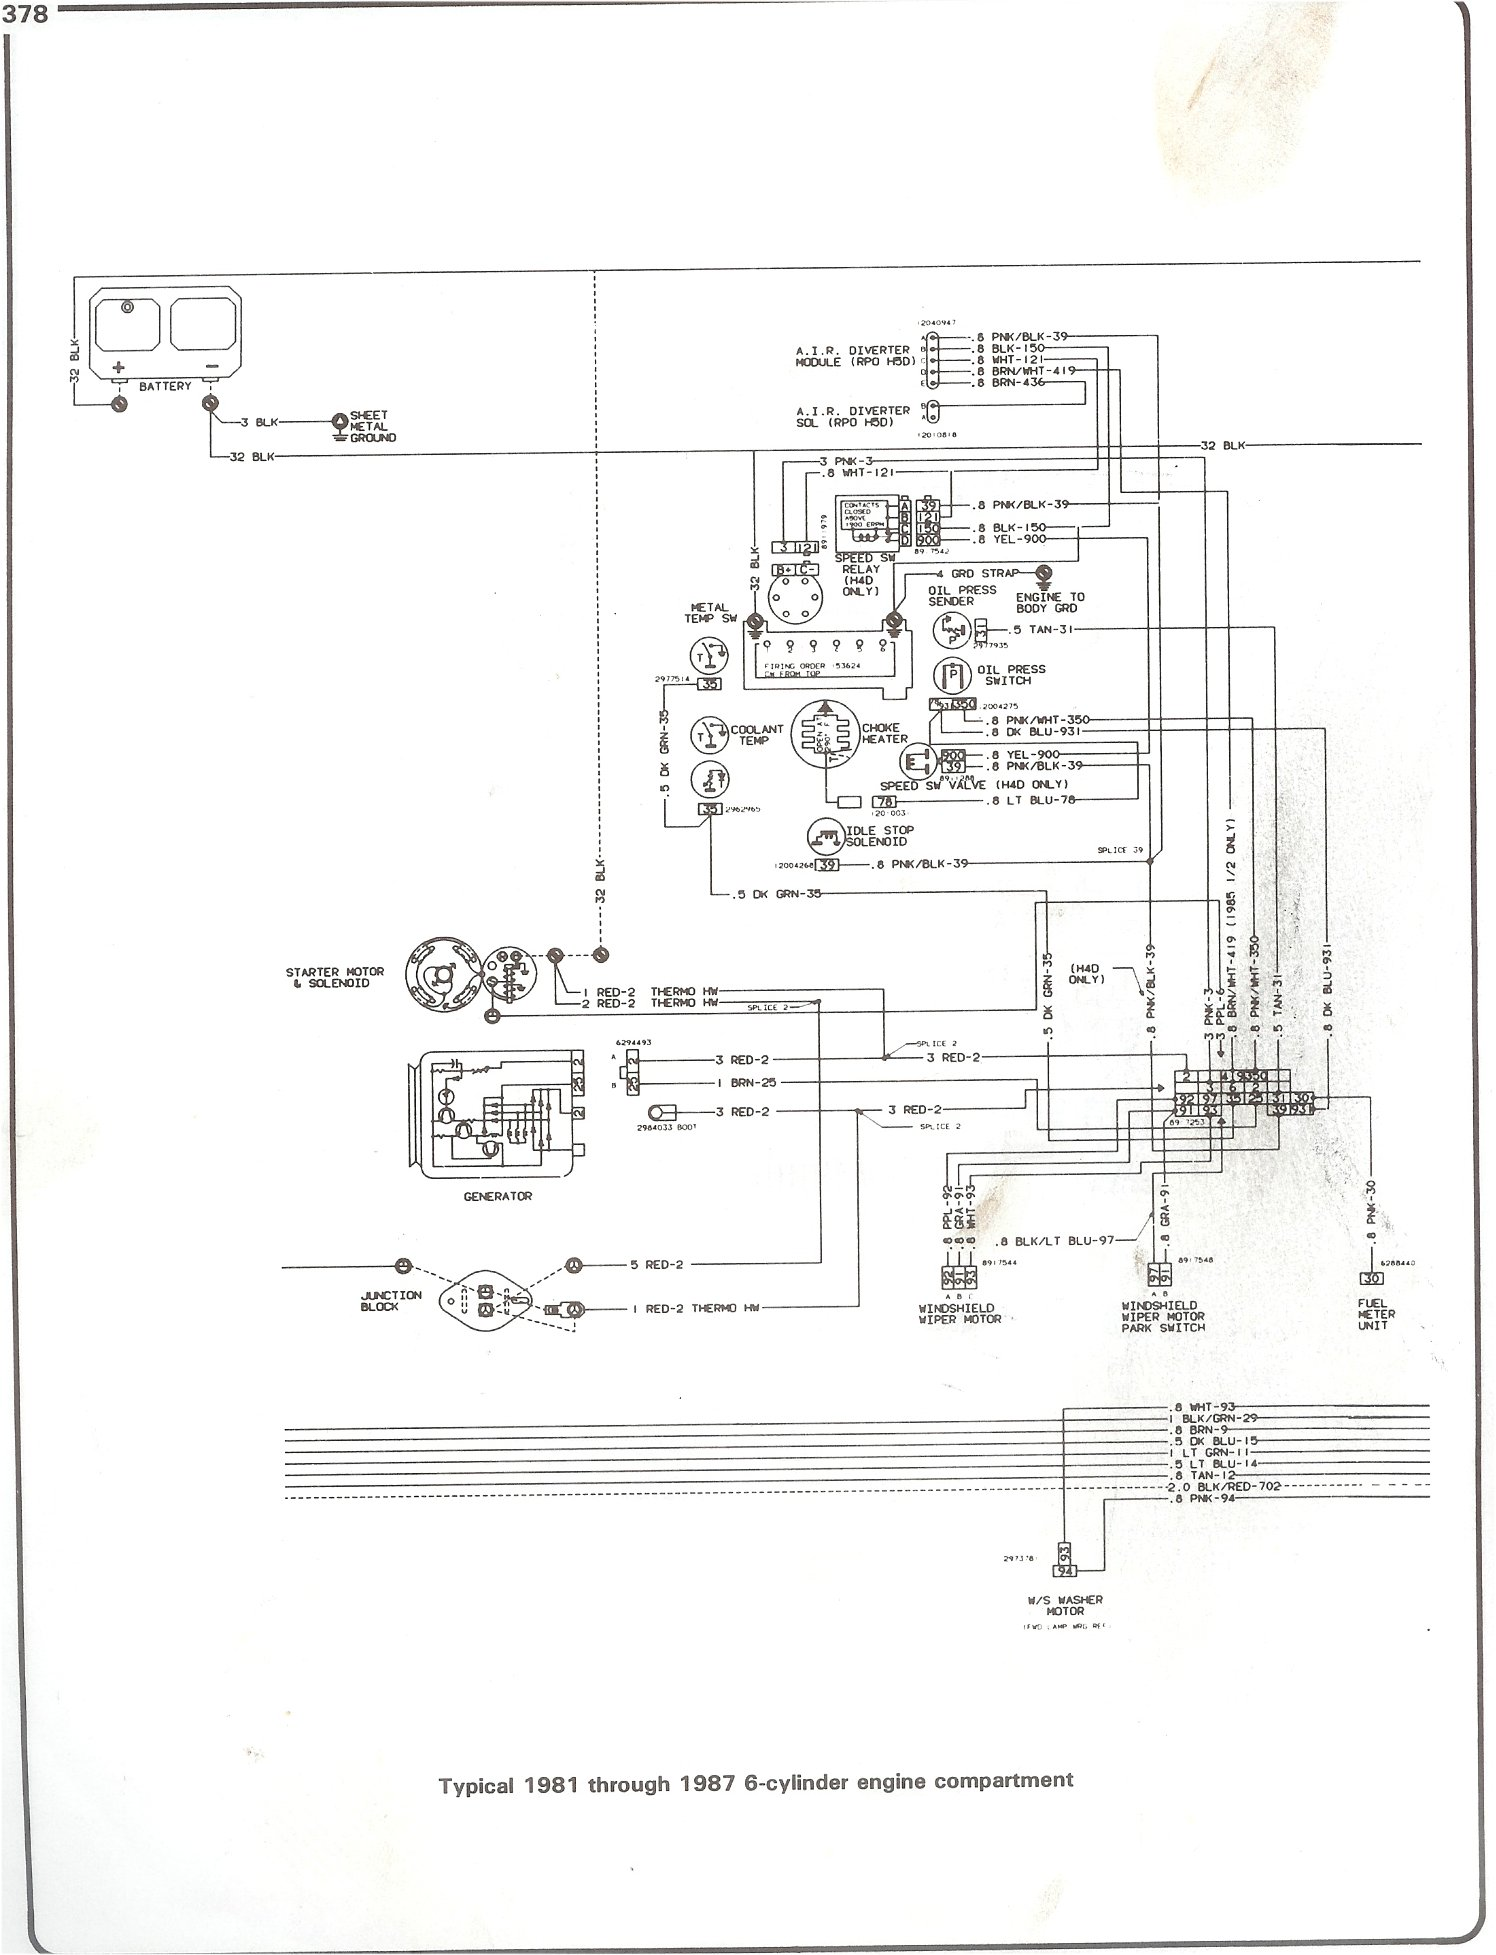 wiring diagram for computer power switch